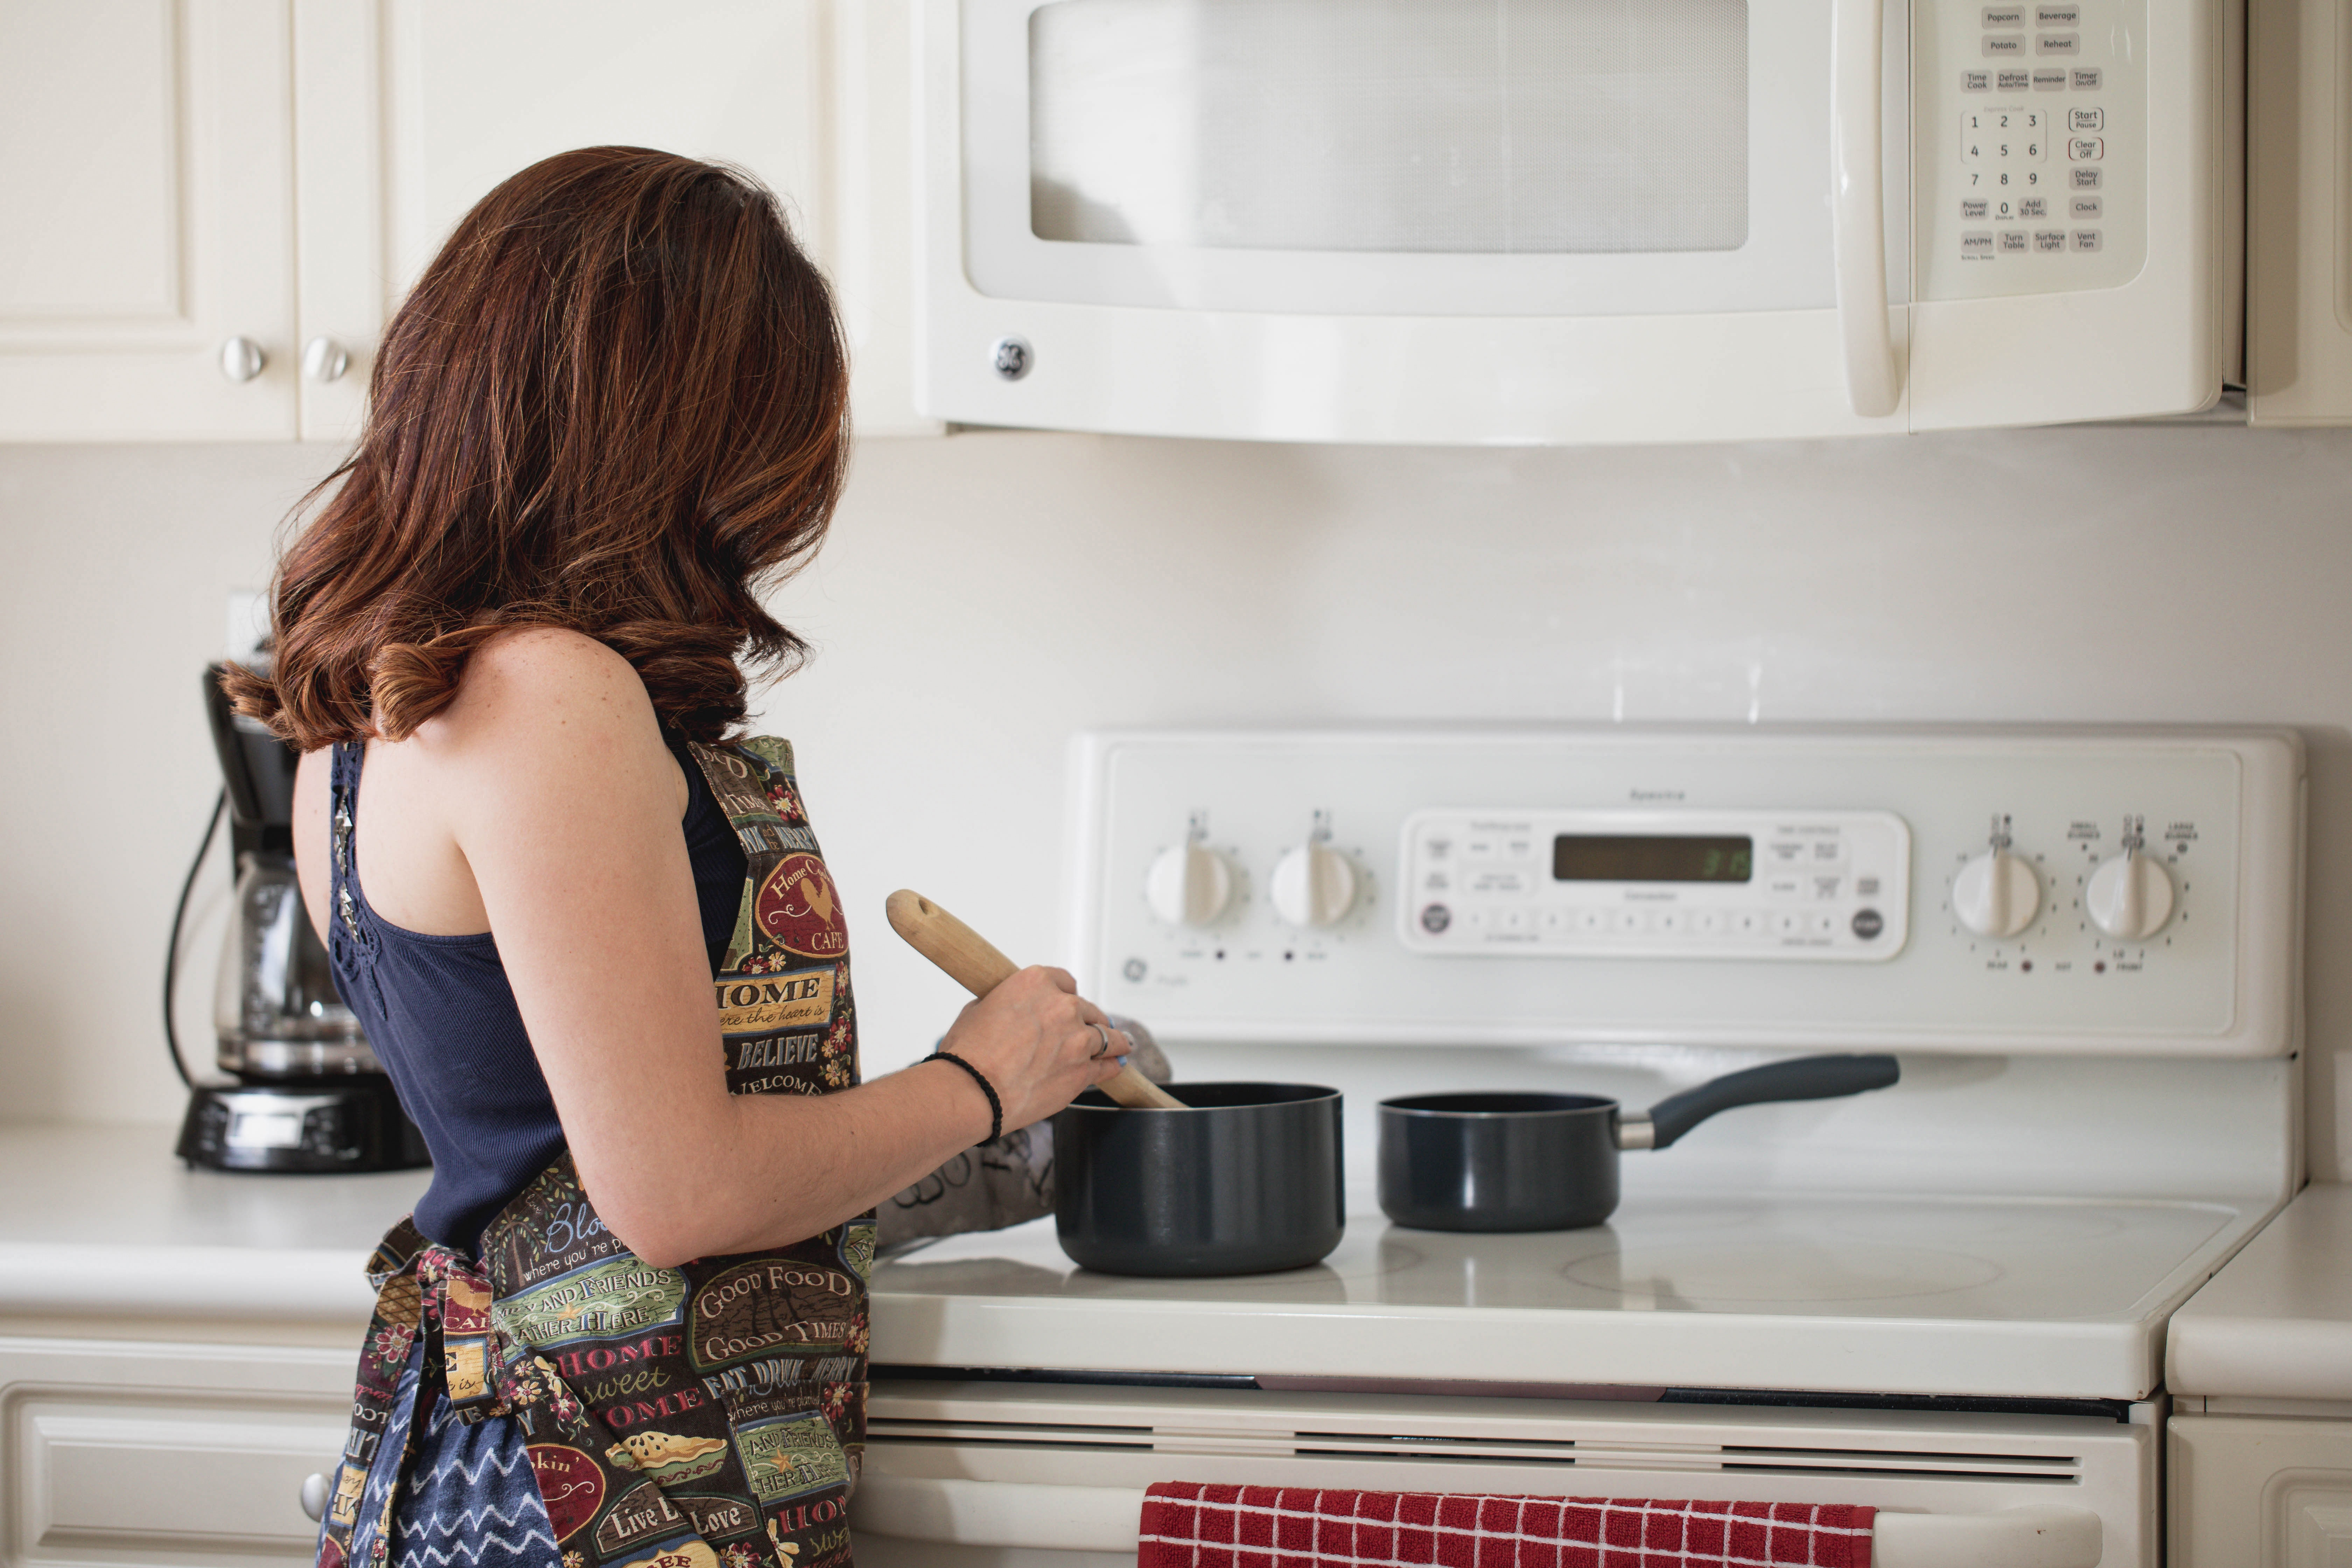 woman-in-the-kitchen-preparing-to-cook-2890387